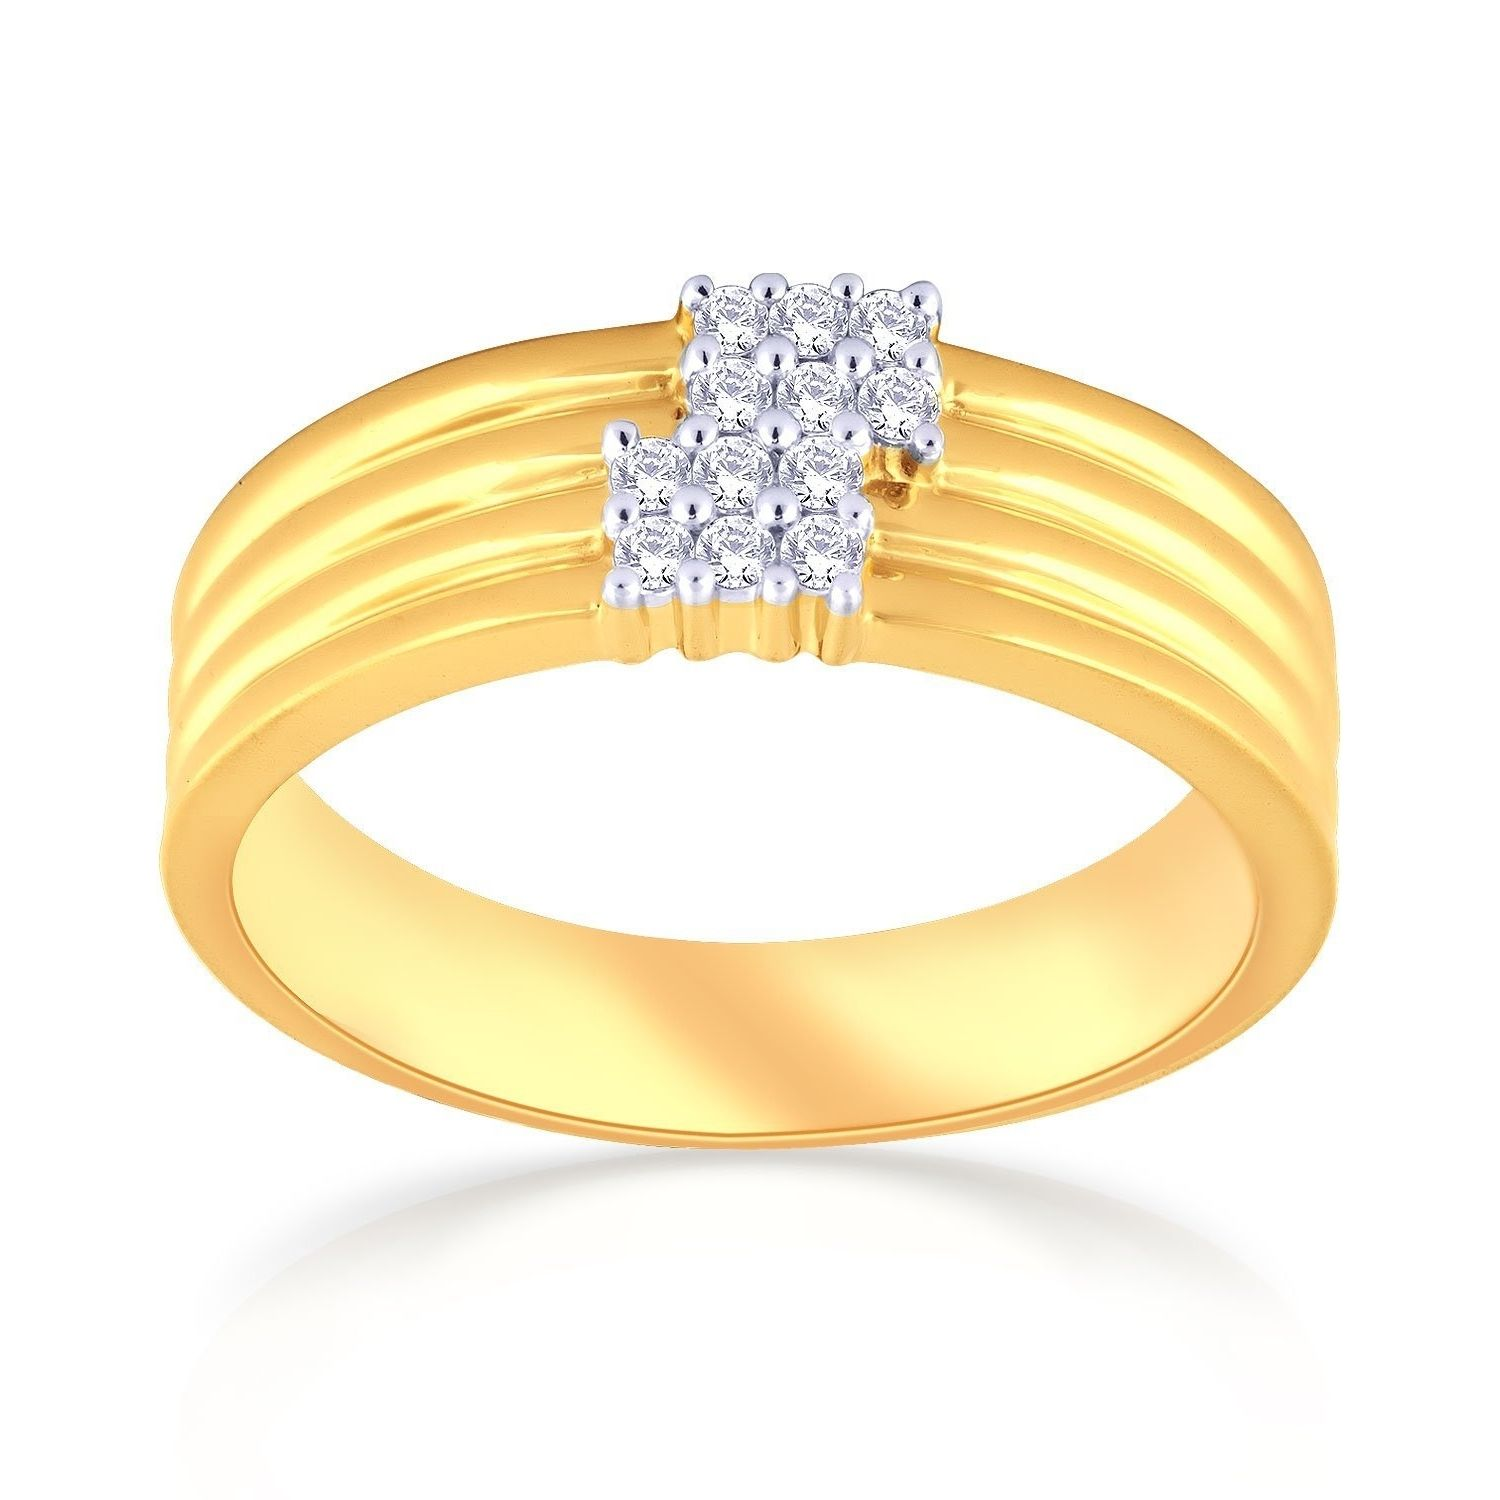 india online prices ring jewellery dp collection low joyalukkas buy gold store engagement in impress yellow amazon at rings